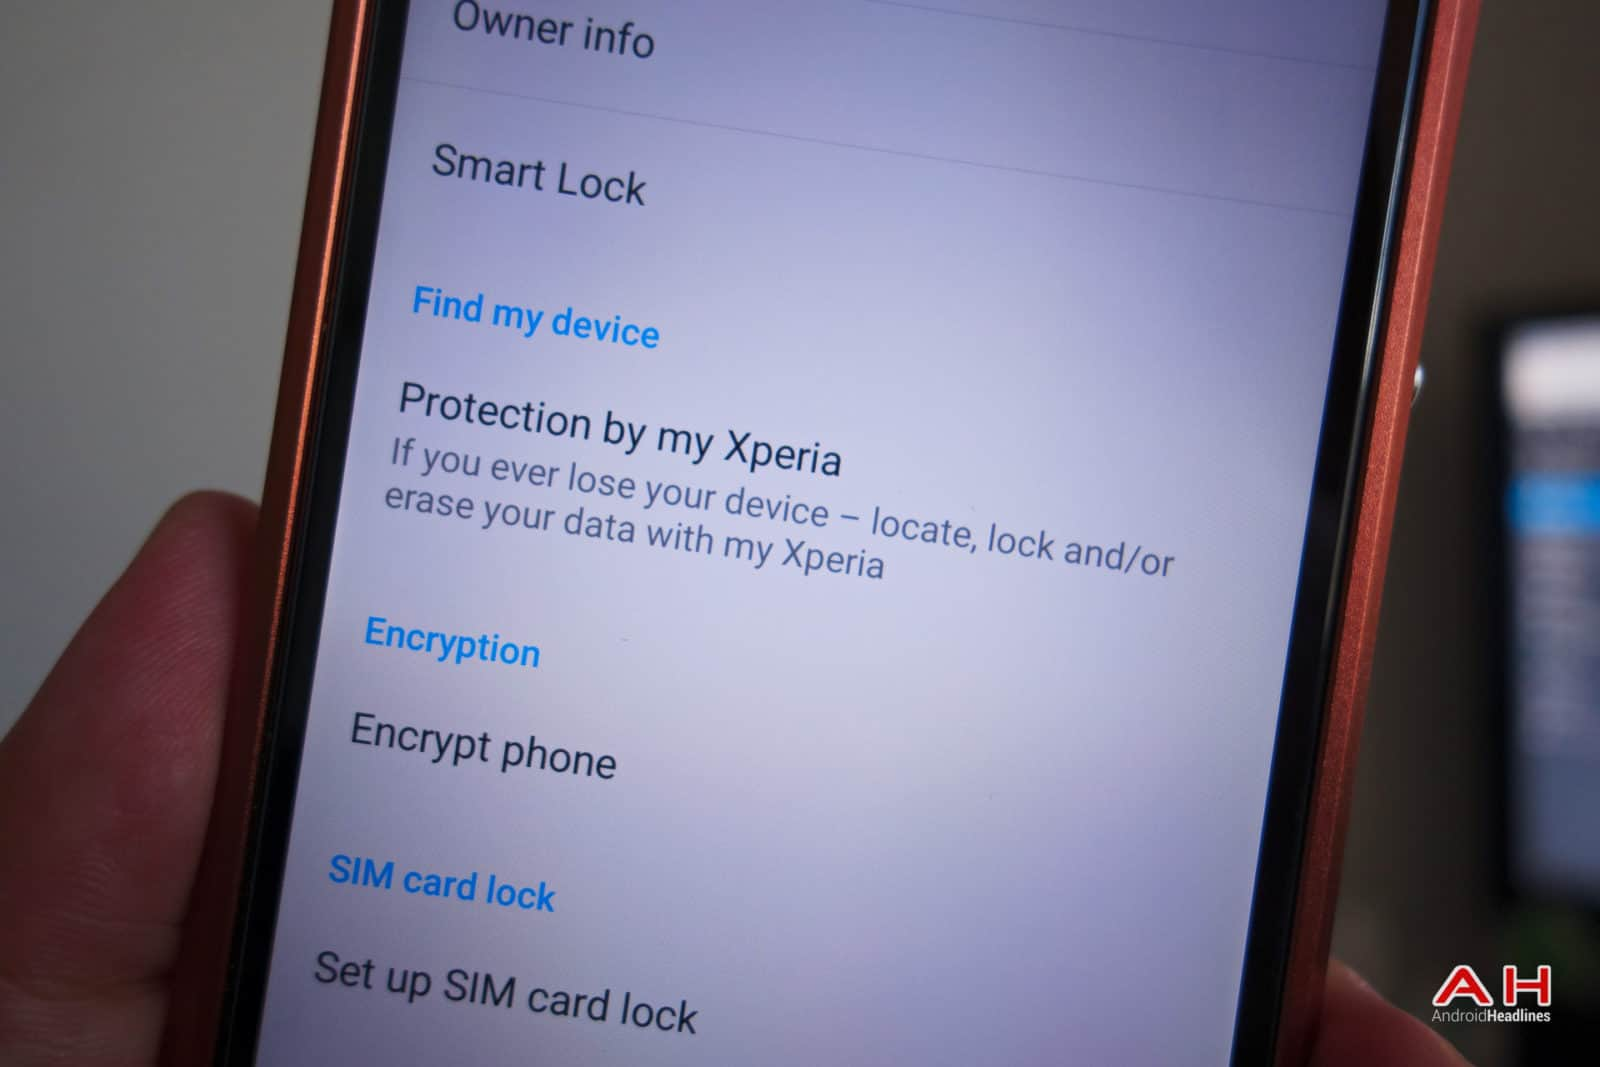 AH Protection by My Xperia-2